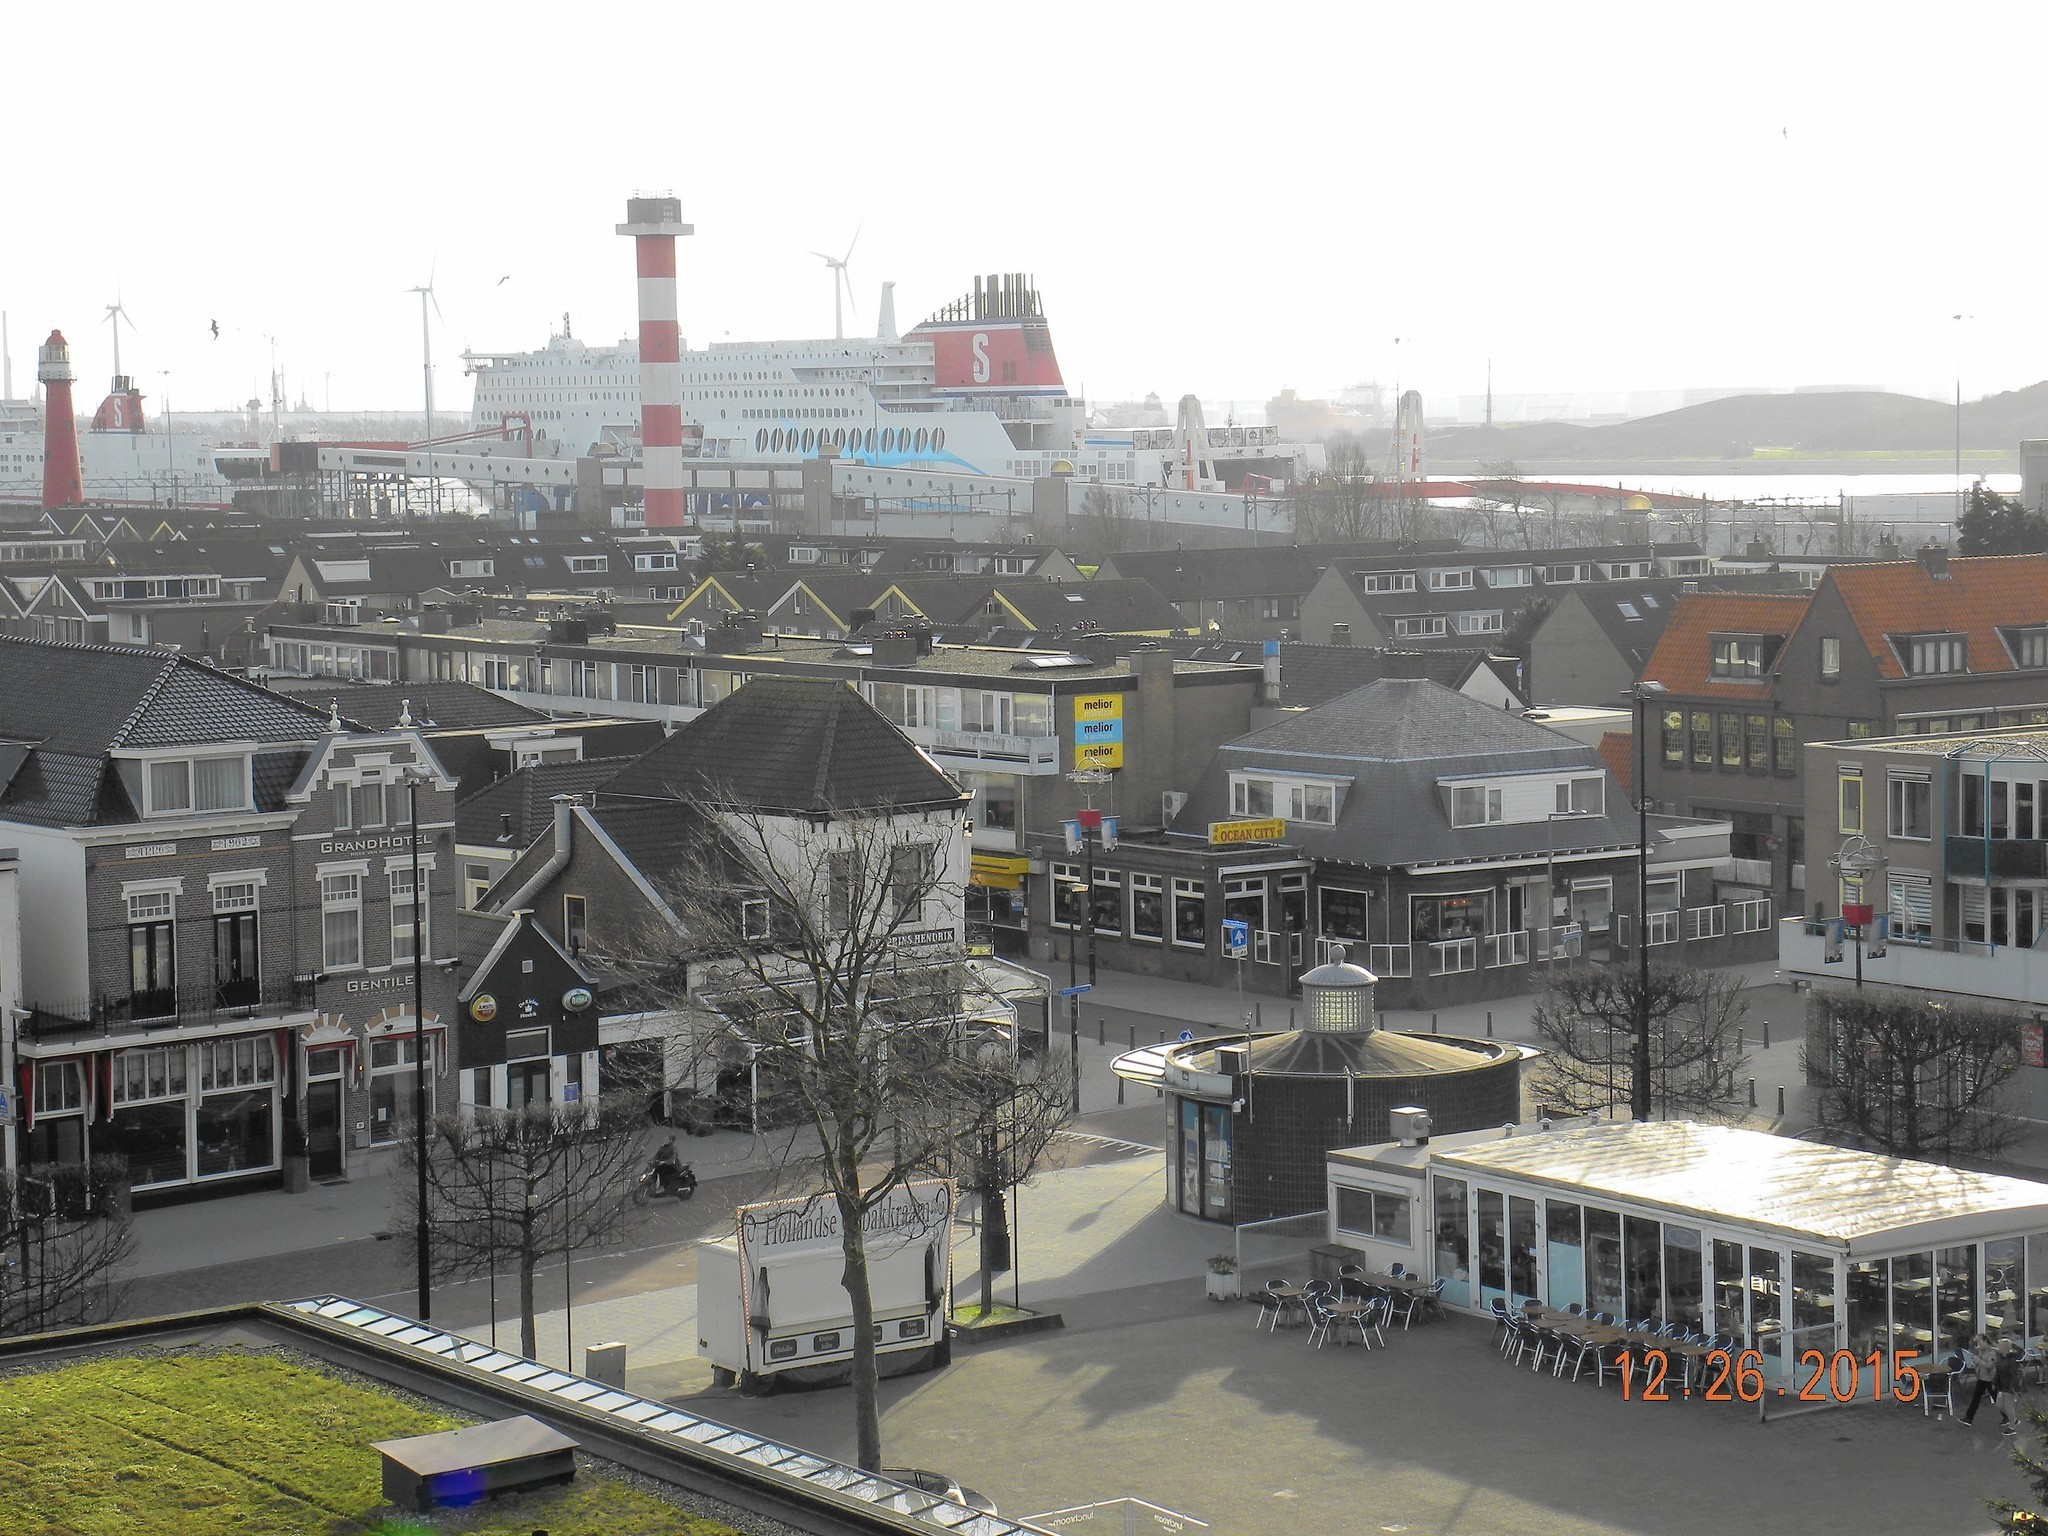 Holland's 'back door' opens visitors' eyes to another side of the country